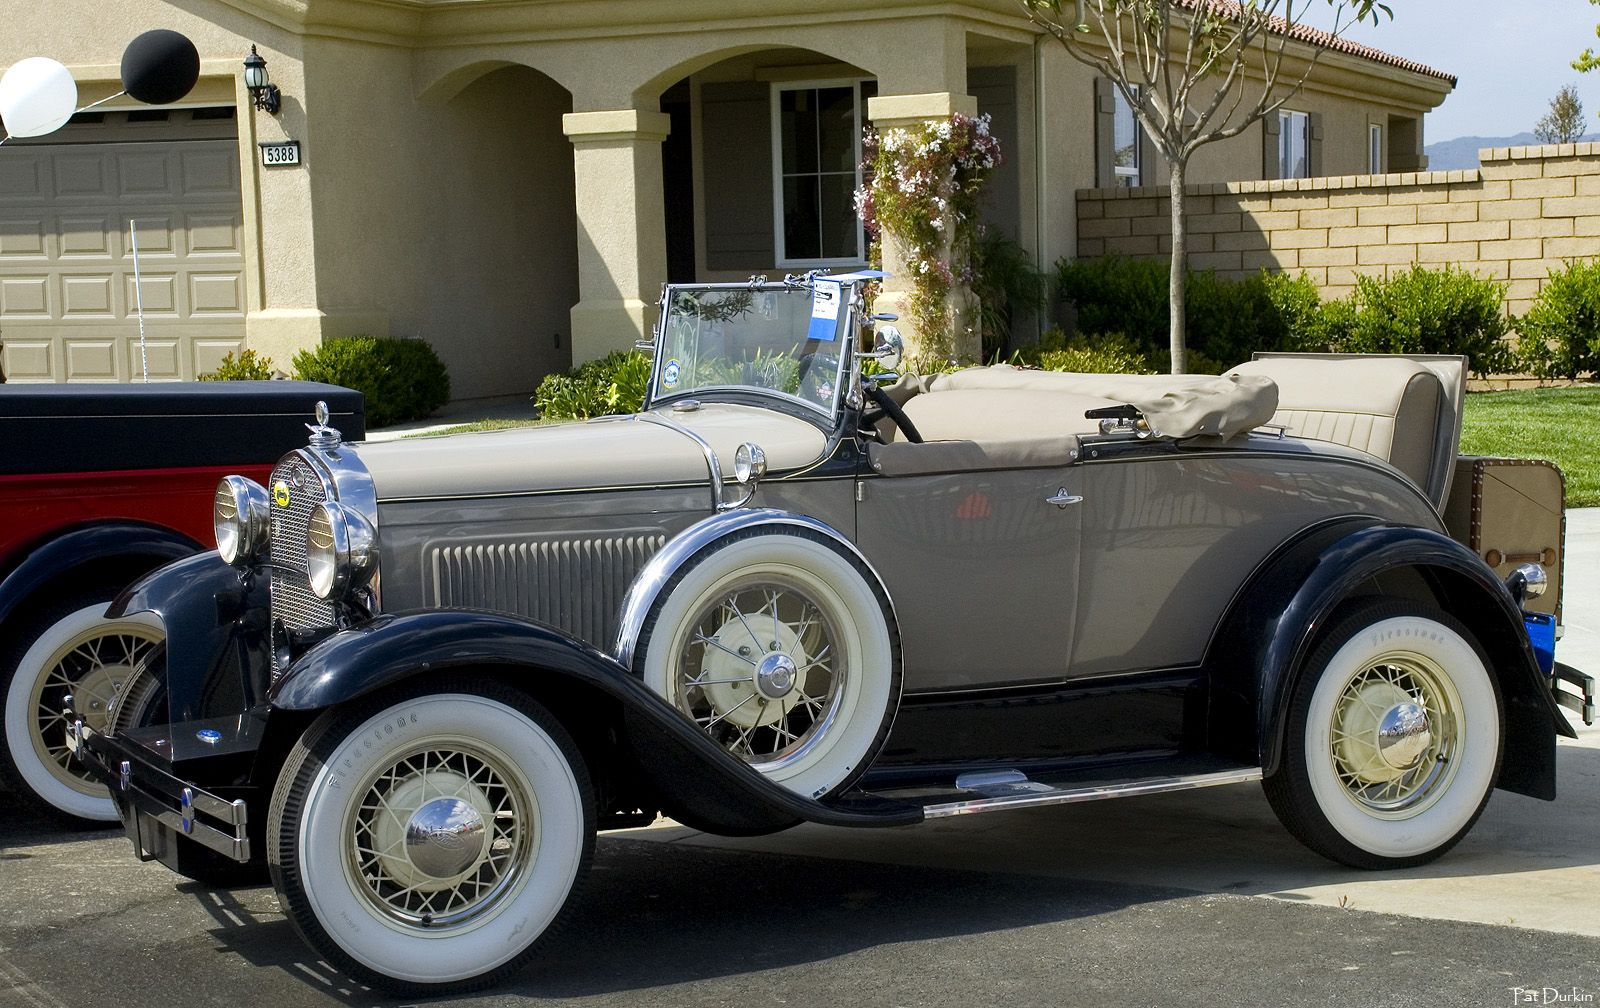 1931 Ford Model A Roadster Beige With Top Down Fvl Aaca Re Pin Brought To You By Car Insurance For Classiccarsandrv S By Retro Cars Ford Classic Cars